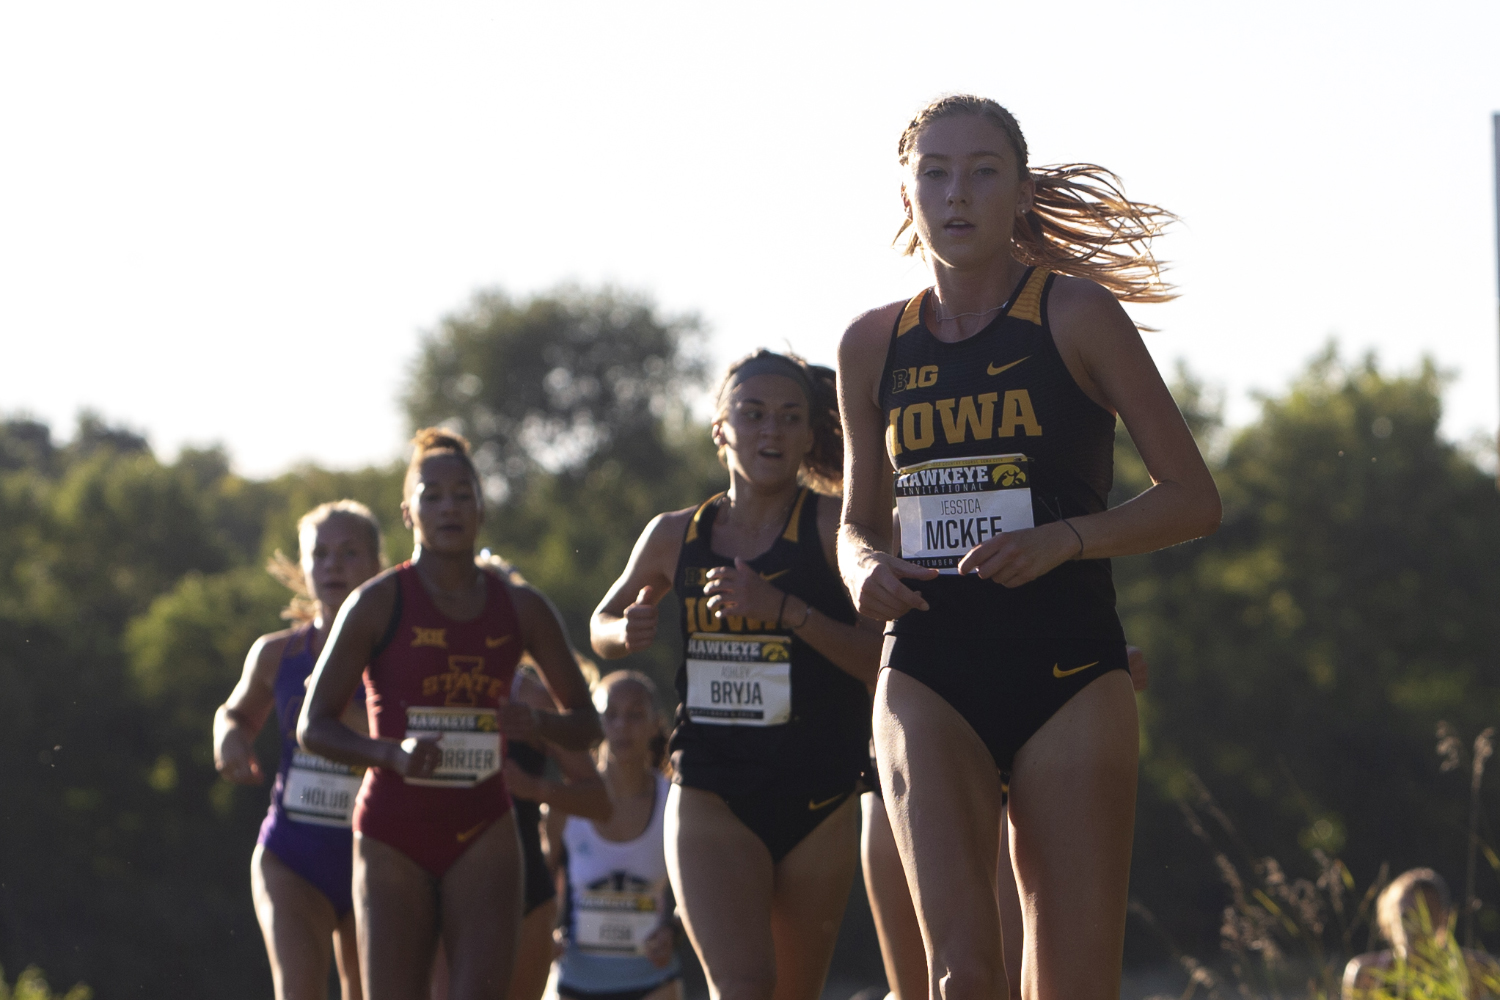 The+University+of+Iowa%E2%80%99s+Jessica+McKee+leads+a+pack+of+runners+during+the+Hawkeye+Invitational+on+Friday%2C+Sept.+6%2C+2019+at+the+Ashton+Cross+Country+Course.+The+Hawkeyes+prevailed+over+six+other+teams+to+win+first+place+overall+in+the+men%E2%80%99s+and+women%E2%80%99s+races.+McKee+finished+in+20th+place+with+a+time+of+14%3A53.